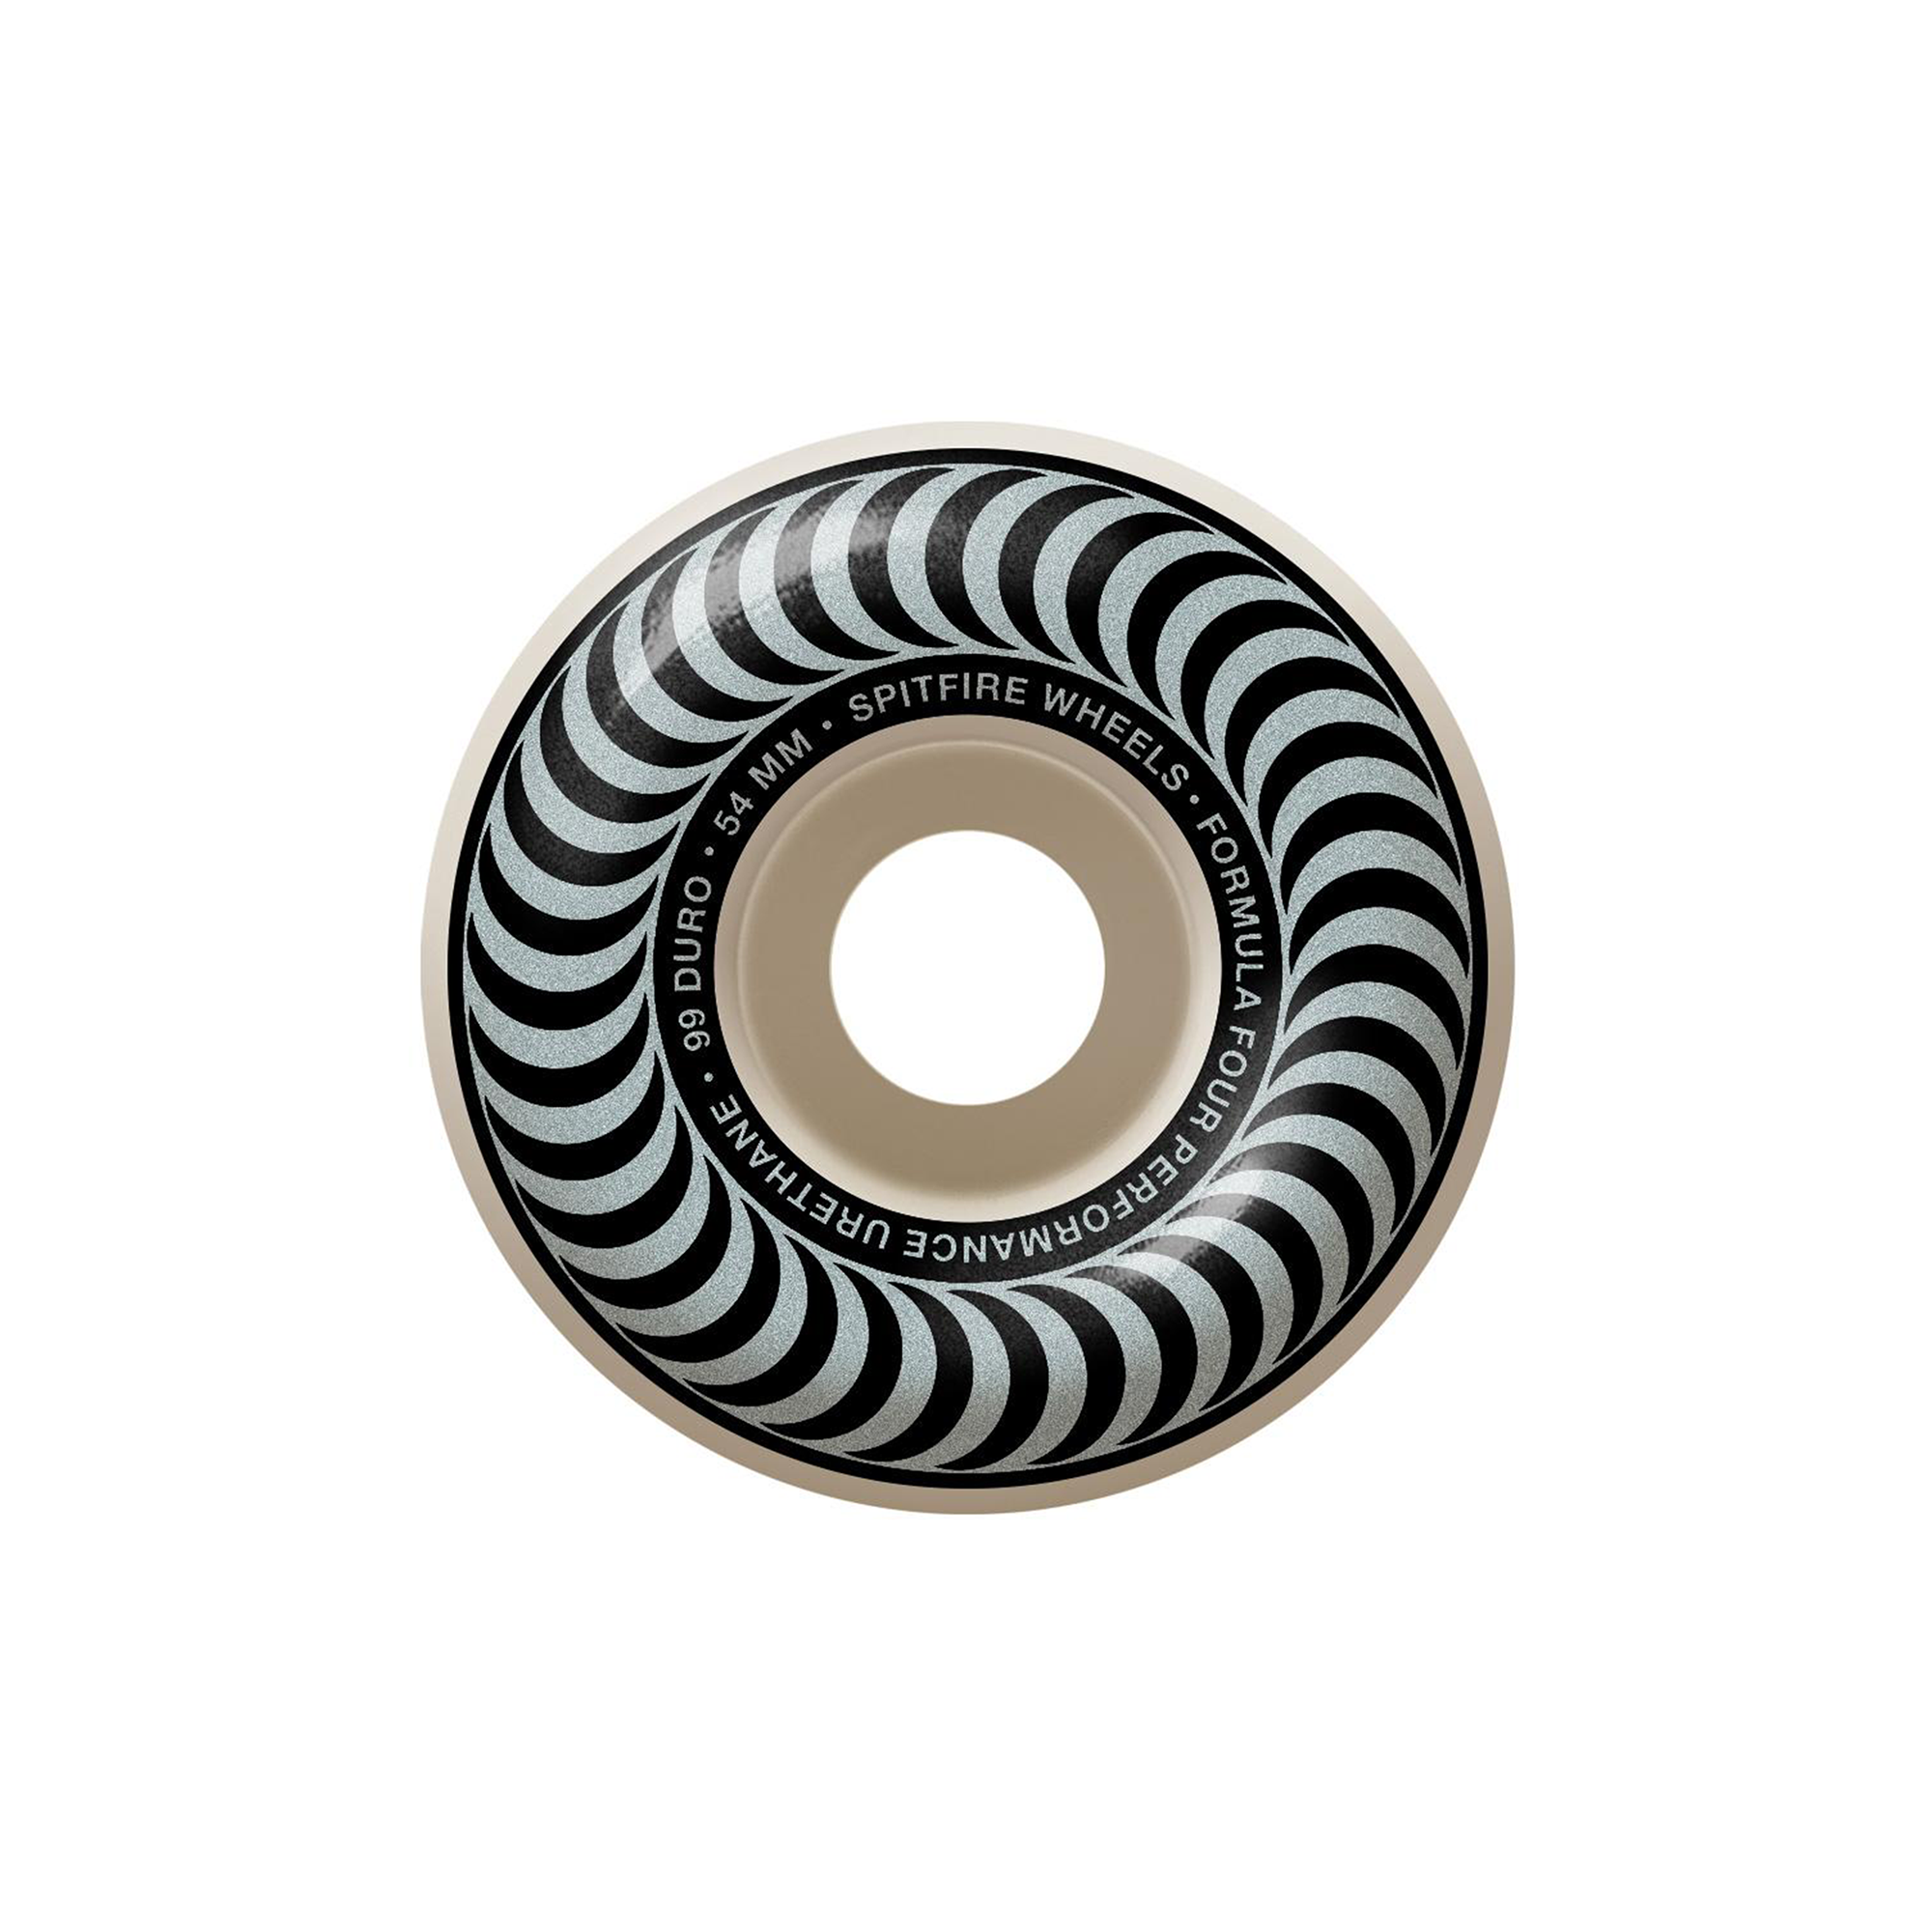 Spitfire Formula Four Classic Swirl 99 Wheel Product Photo #3